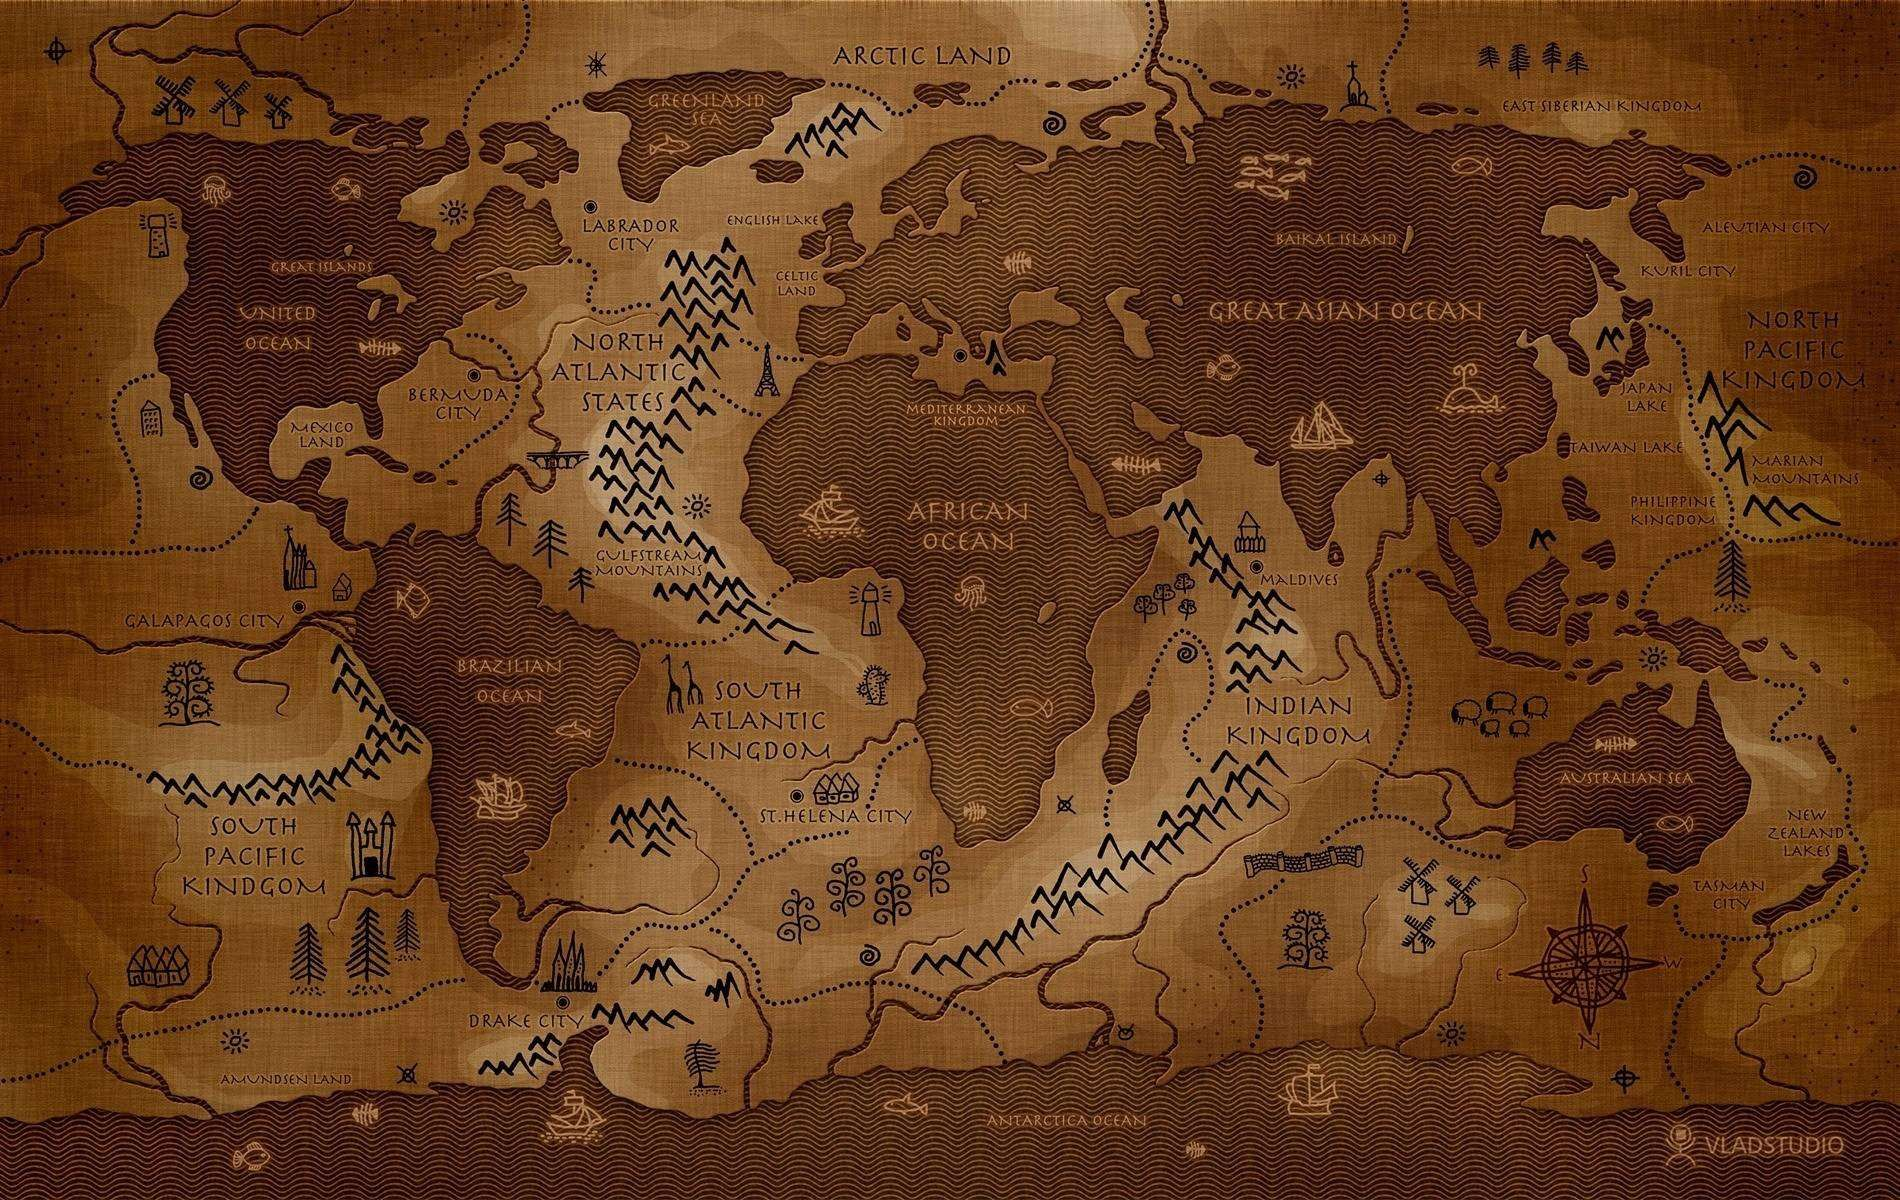 Old timey eurasia map google search card game branding pinterest old timey eurasia map google search gumiabroncs Image collections